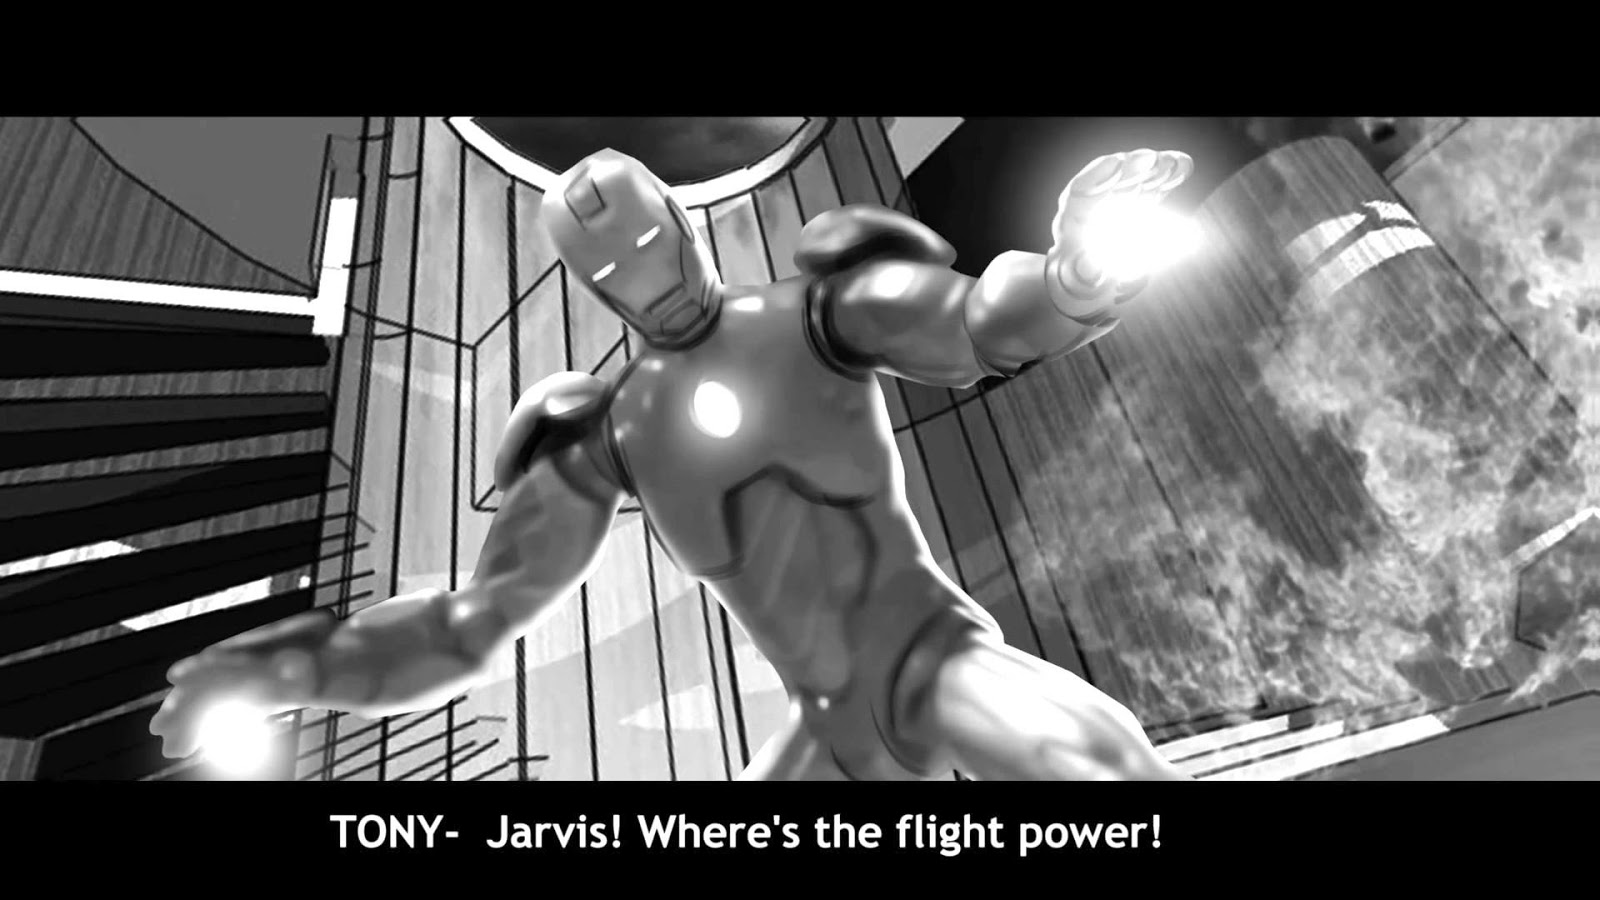 pictures of iron man iron man 3 mansion attack animatic by federico d iron man of pictures